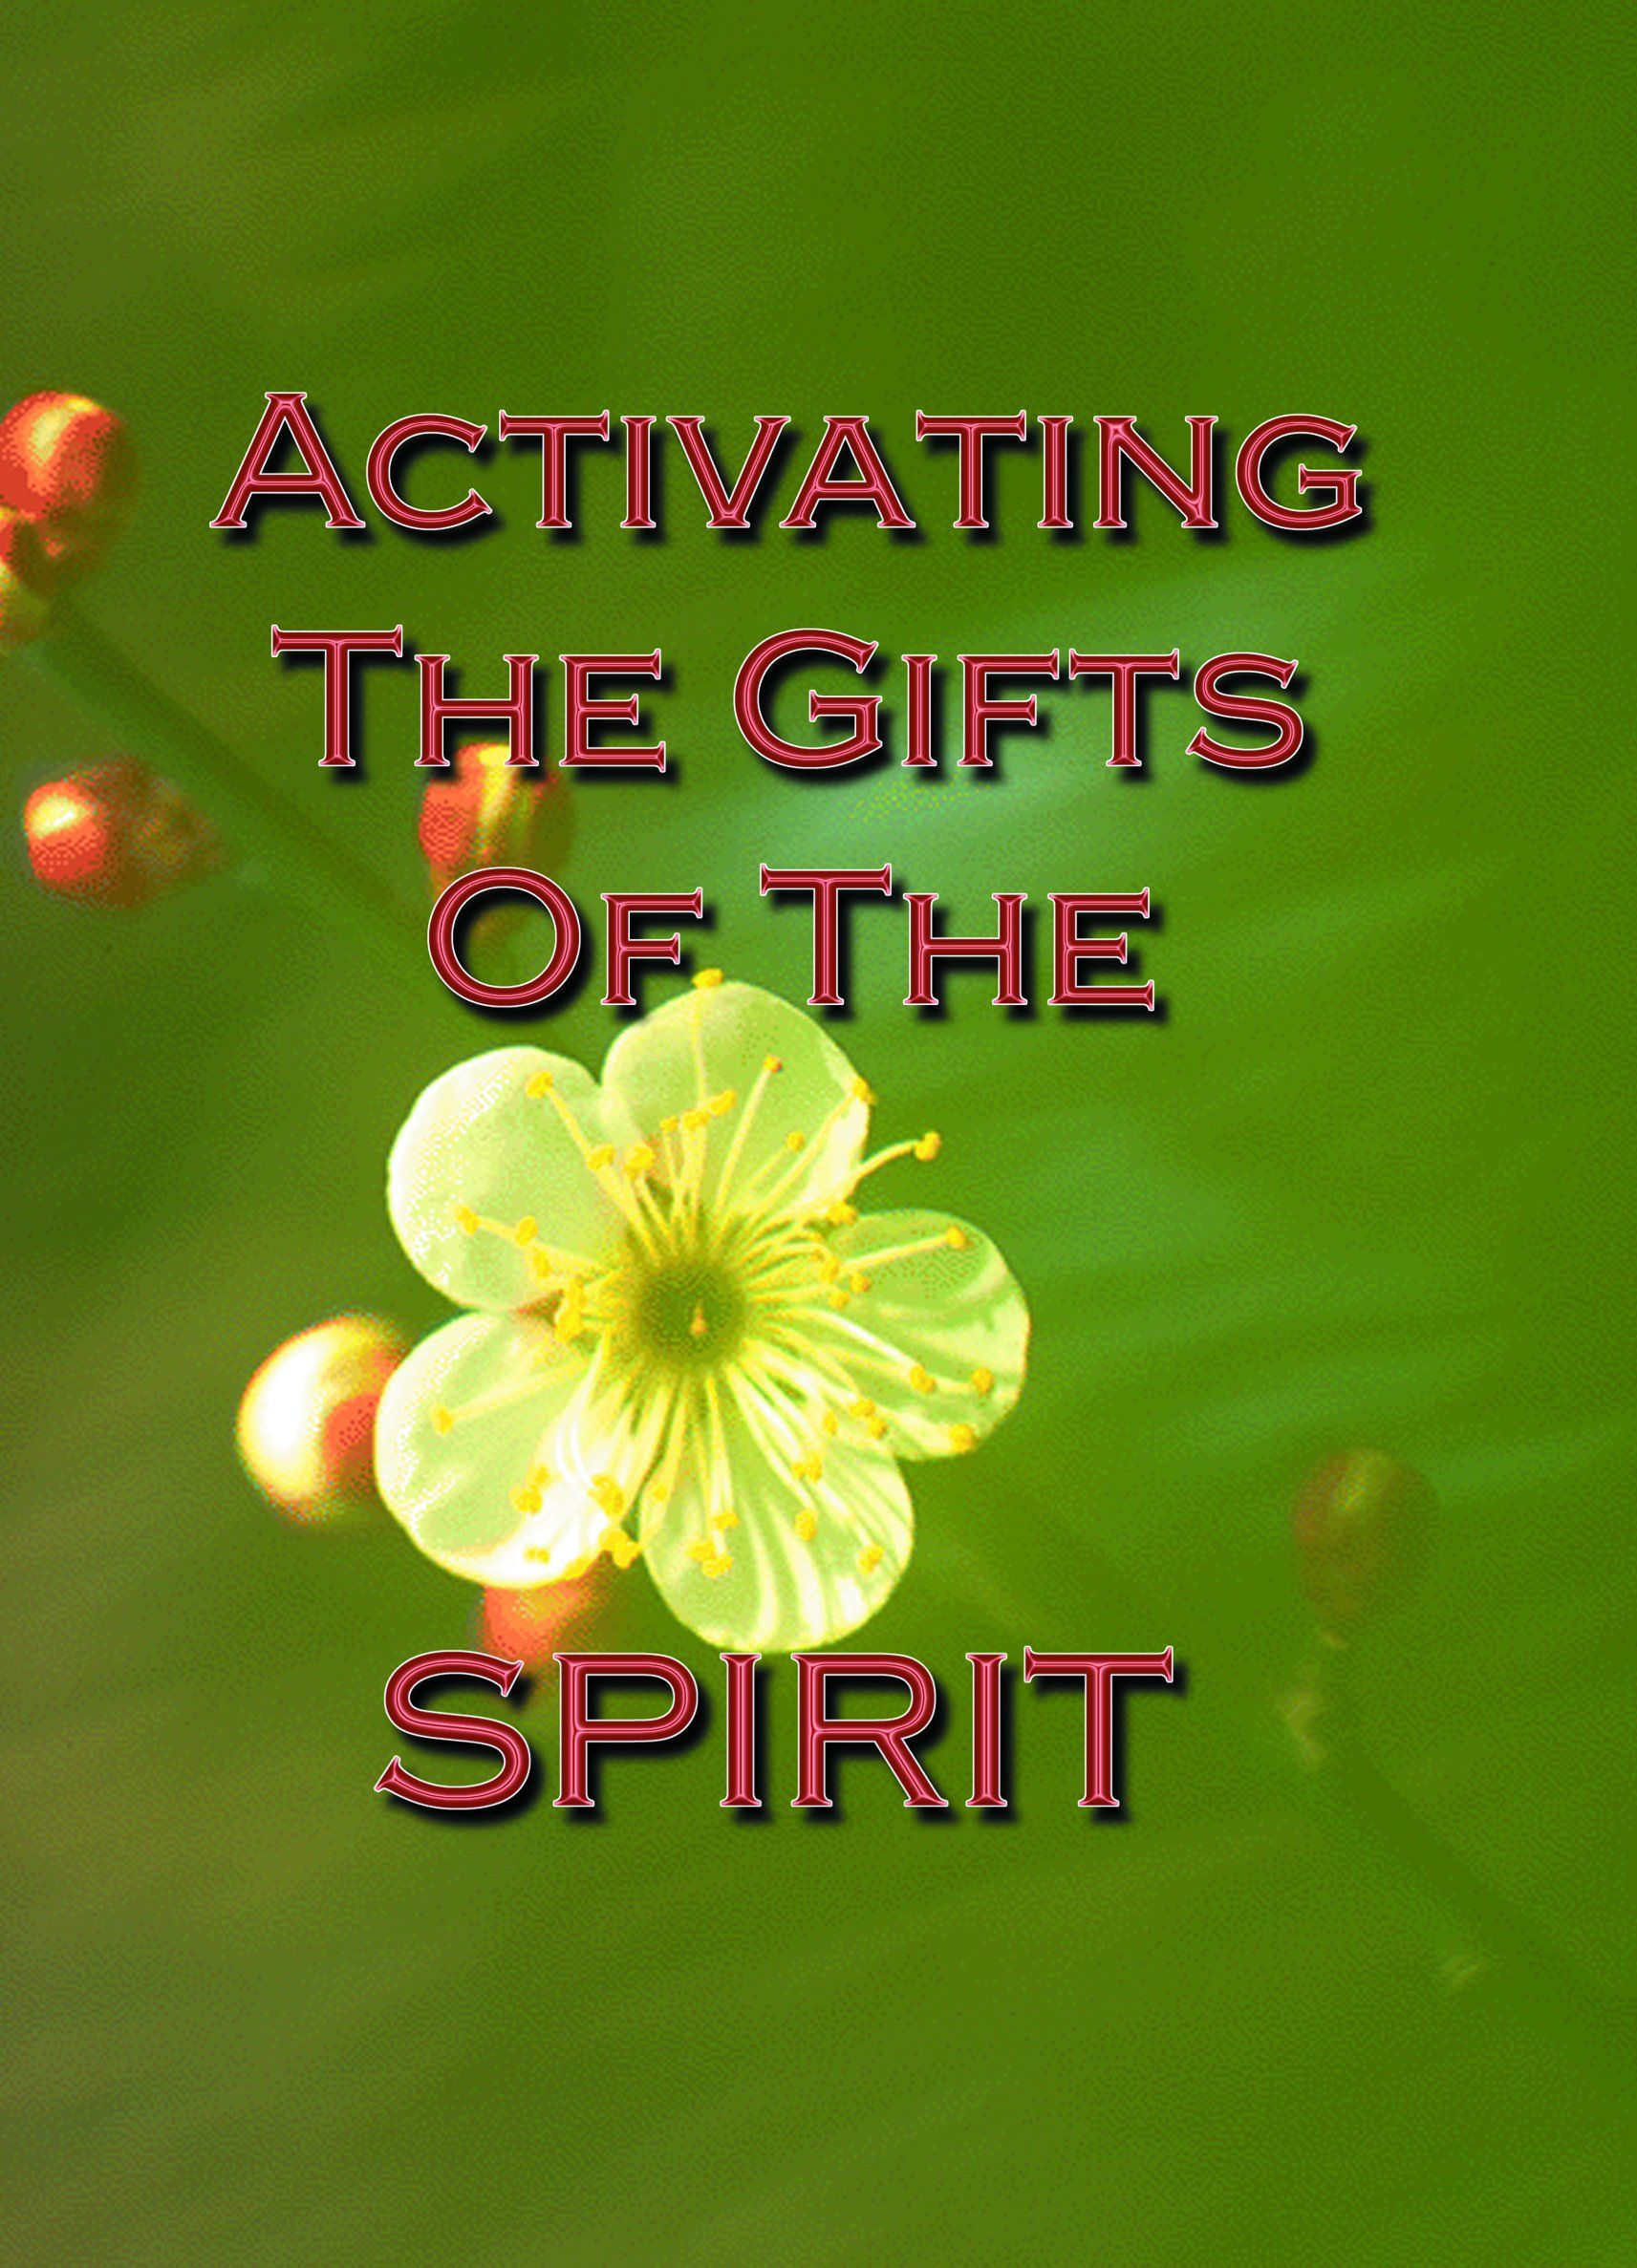 Activating the gifts of the spirit in 2020 gifts of the